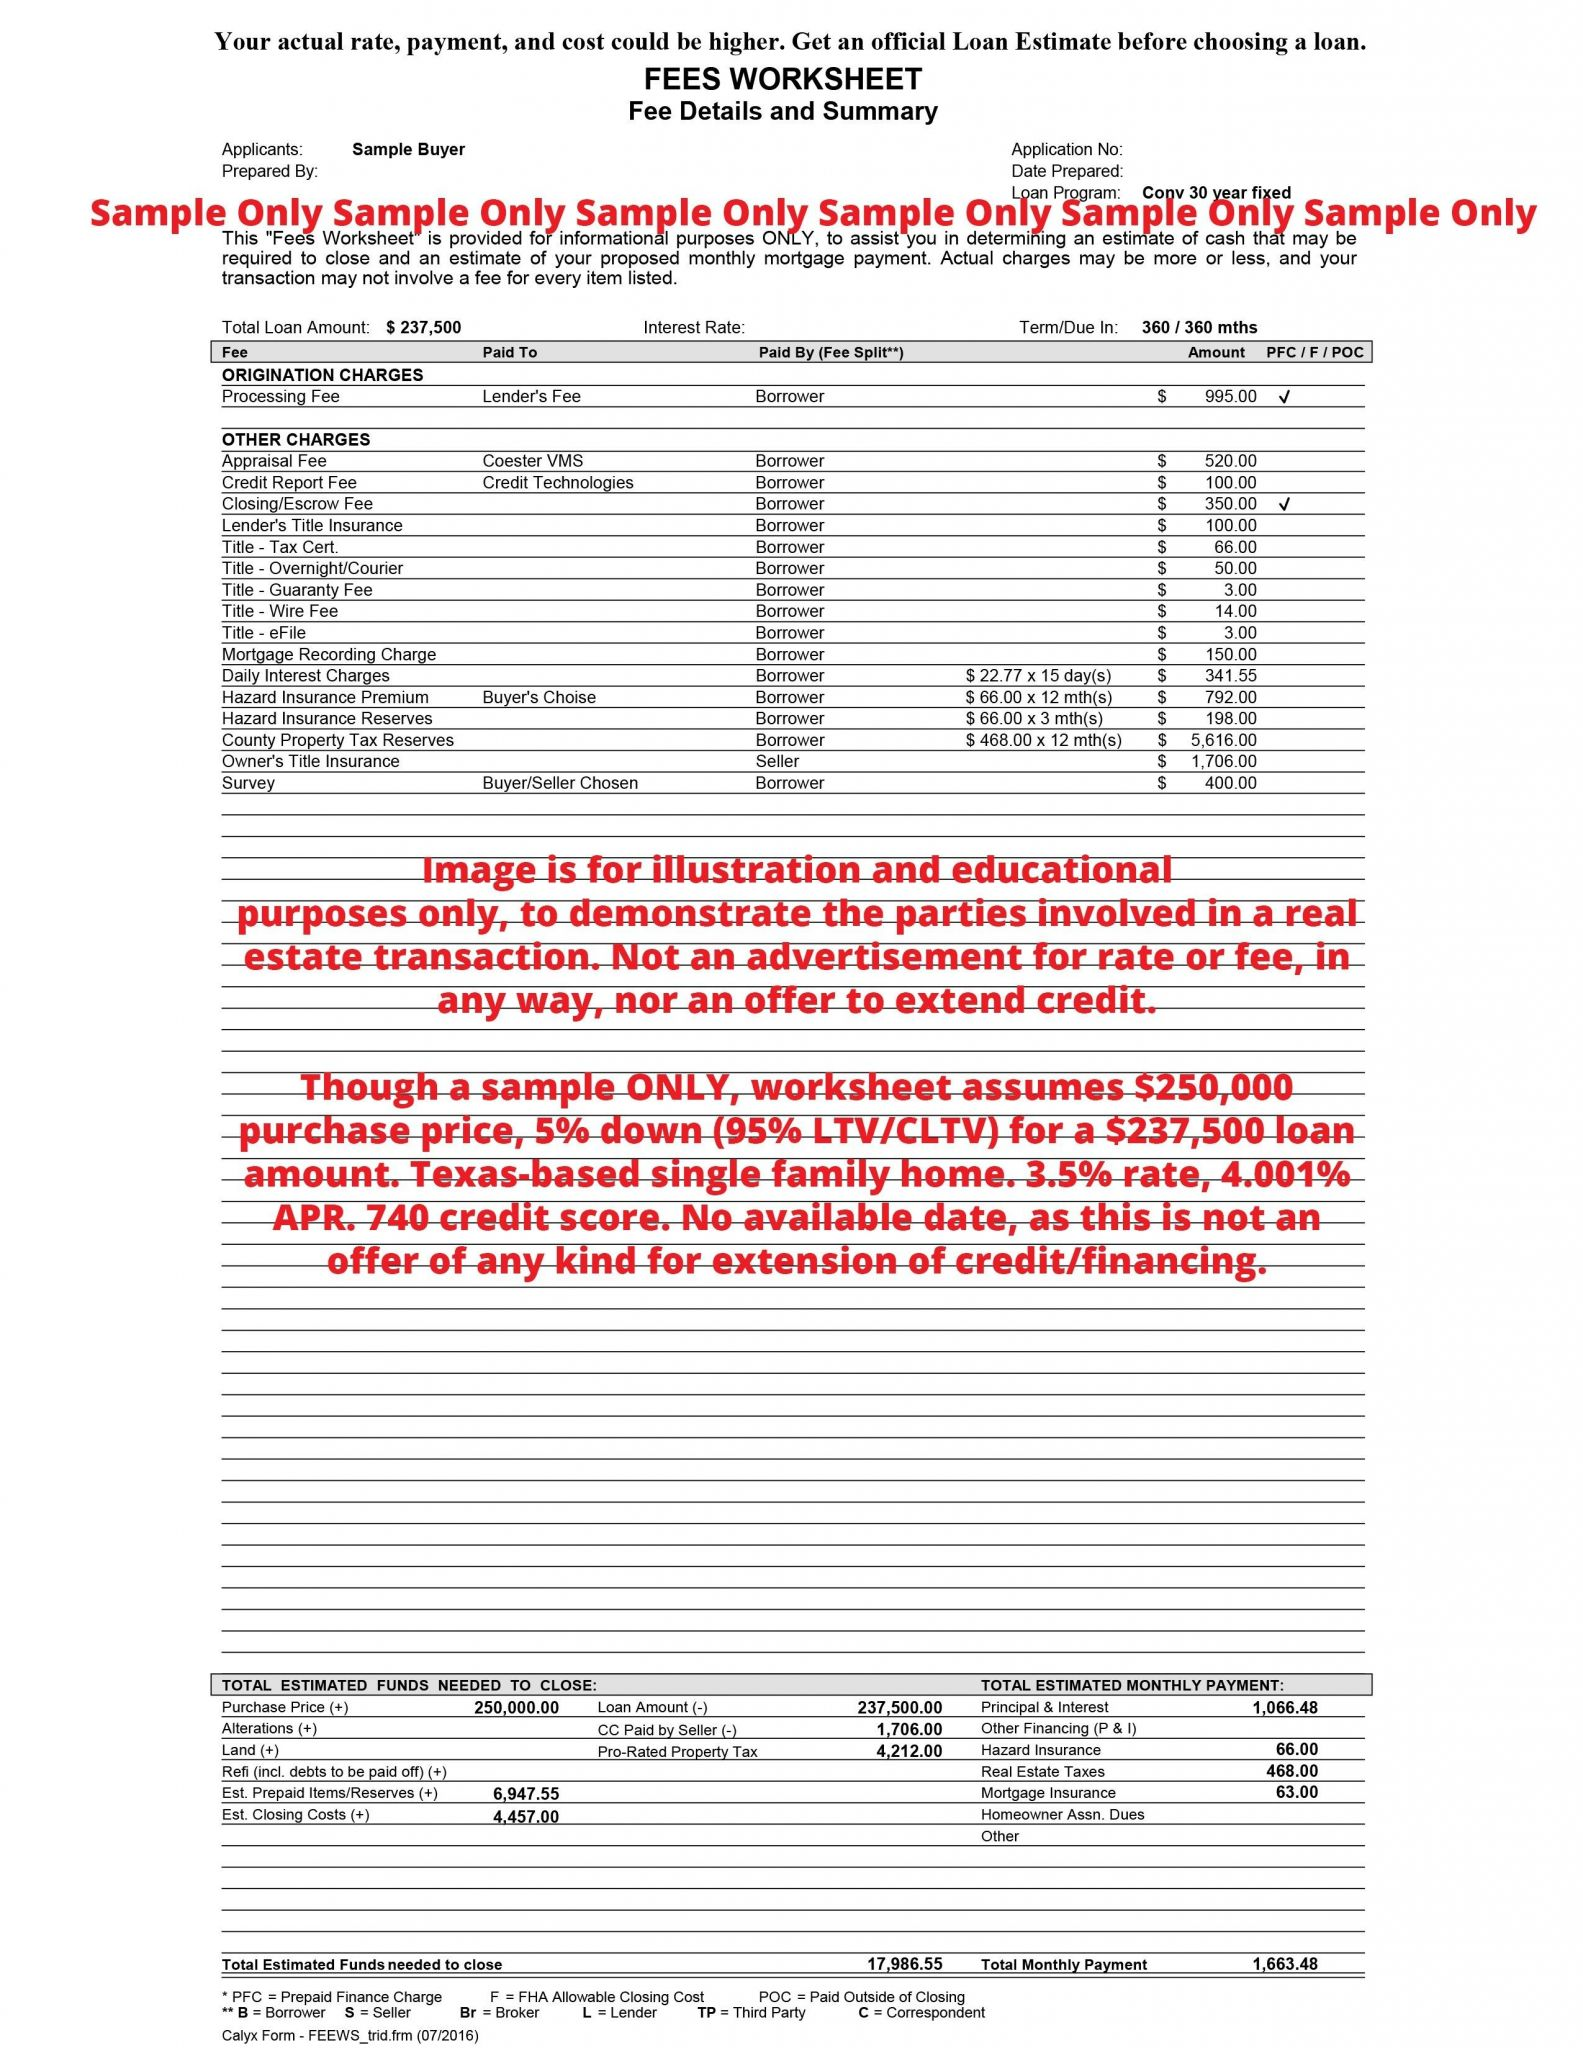 Estimated Tax Worksheet